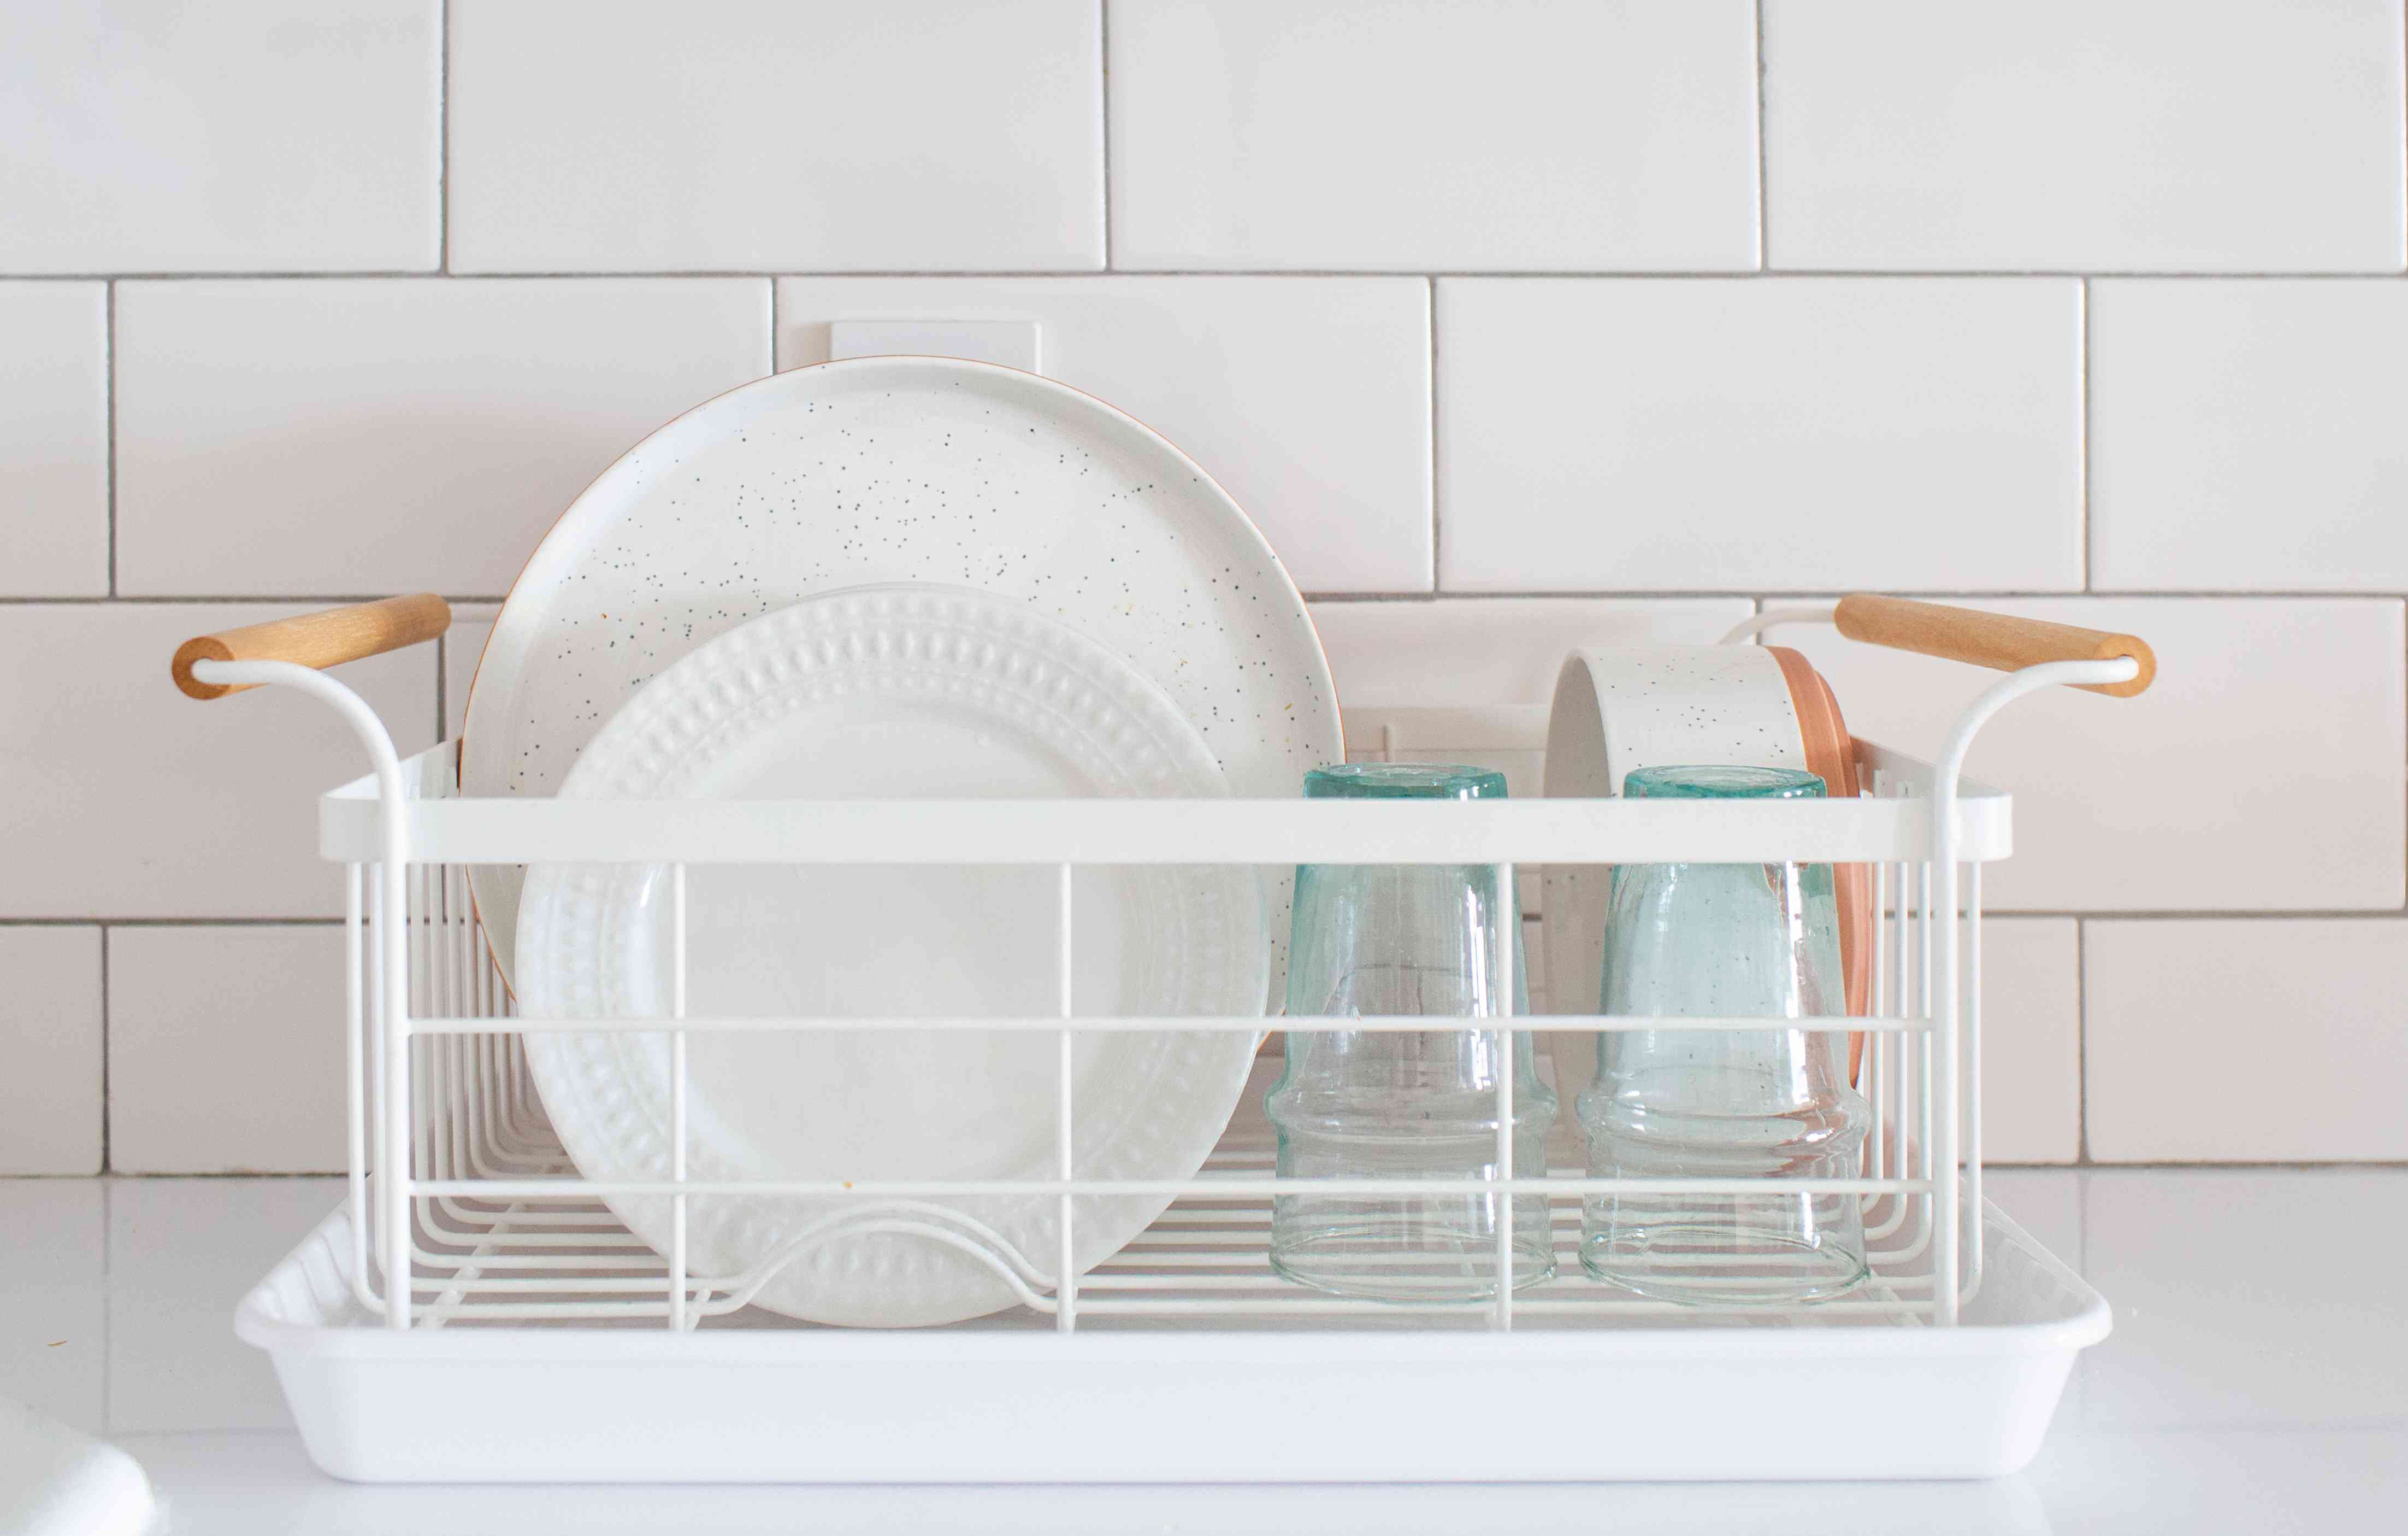 dishes drying in a dish rack